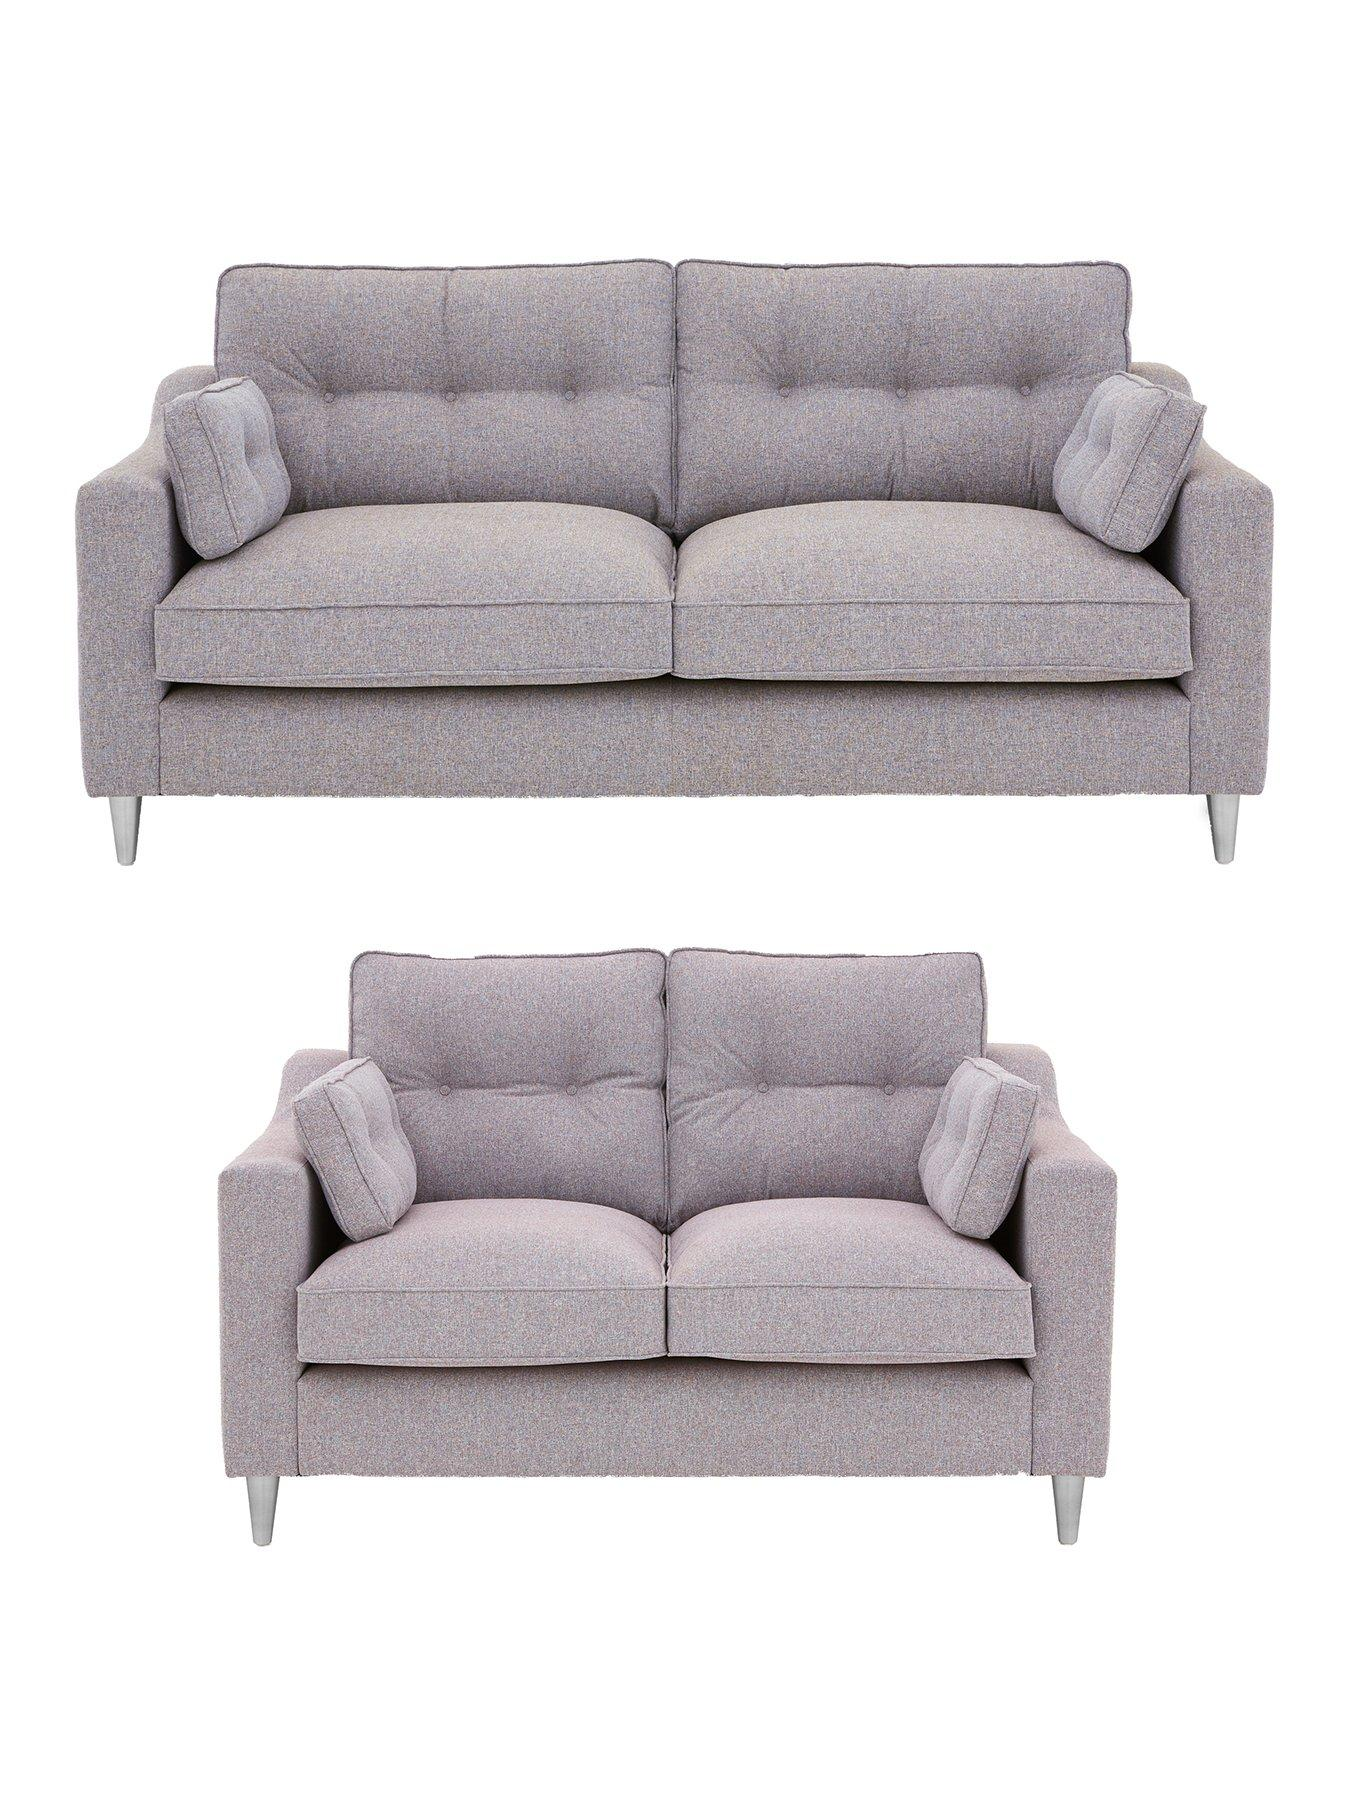 Sofas | 2 Seater Sofas |Very.co.uk